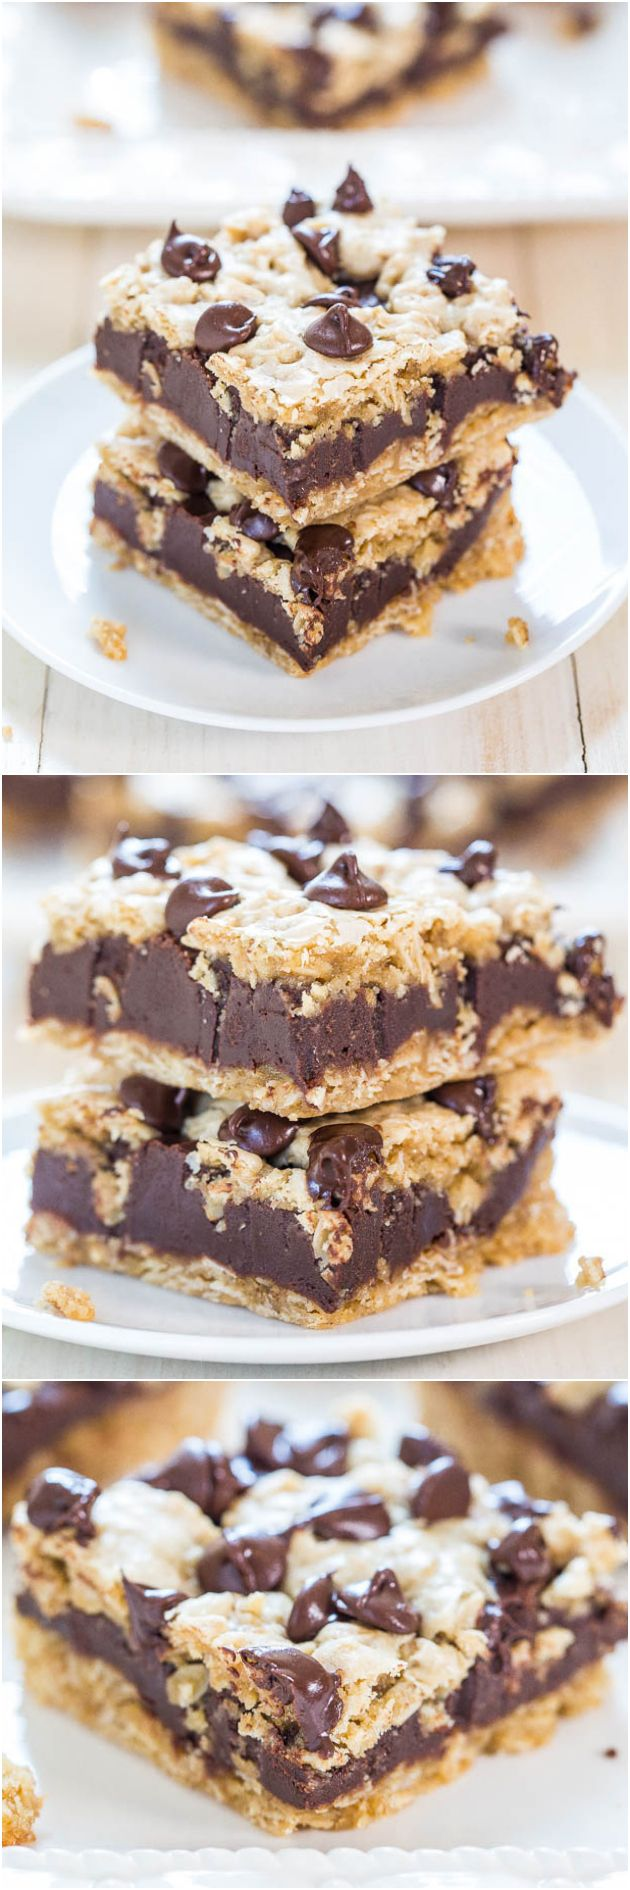 Fudgy Oatmeal Chocolate Chip Cookie Bars - Chewy bars with a thick layer of fudge in the middle! Whoa, hello chocolate overload!!